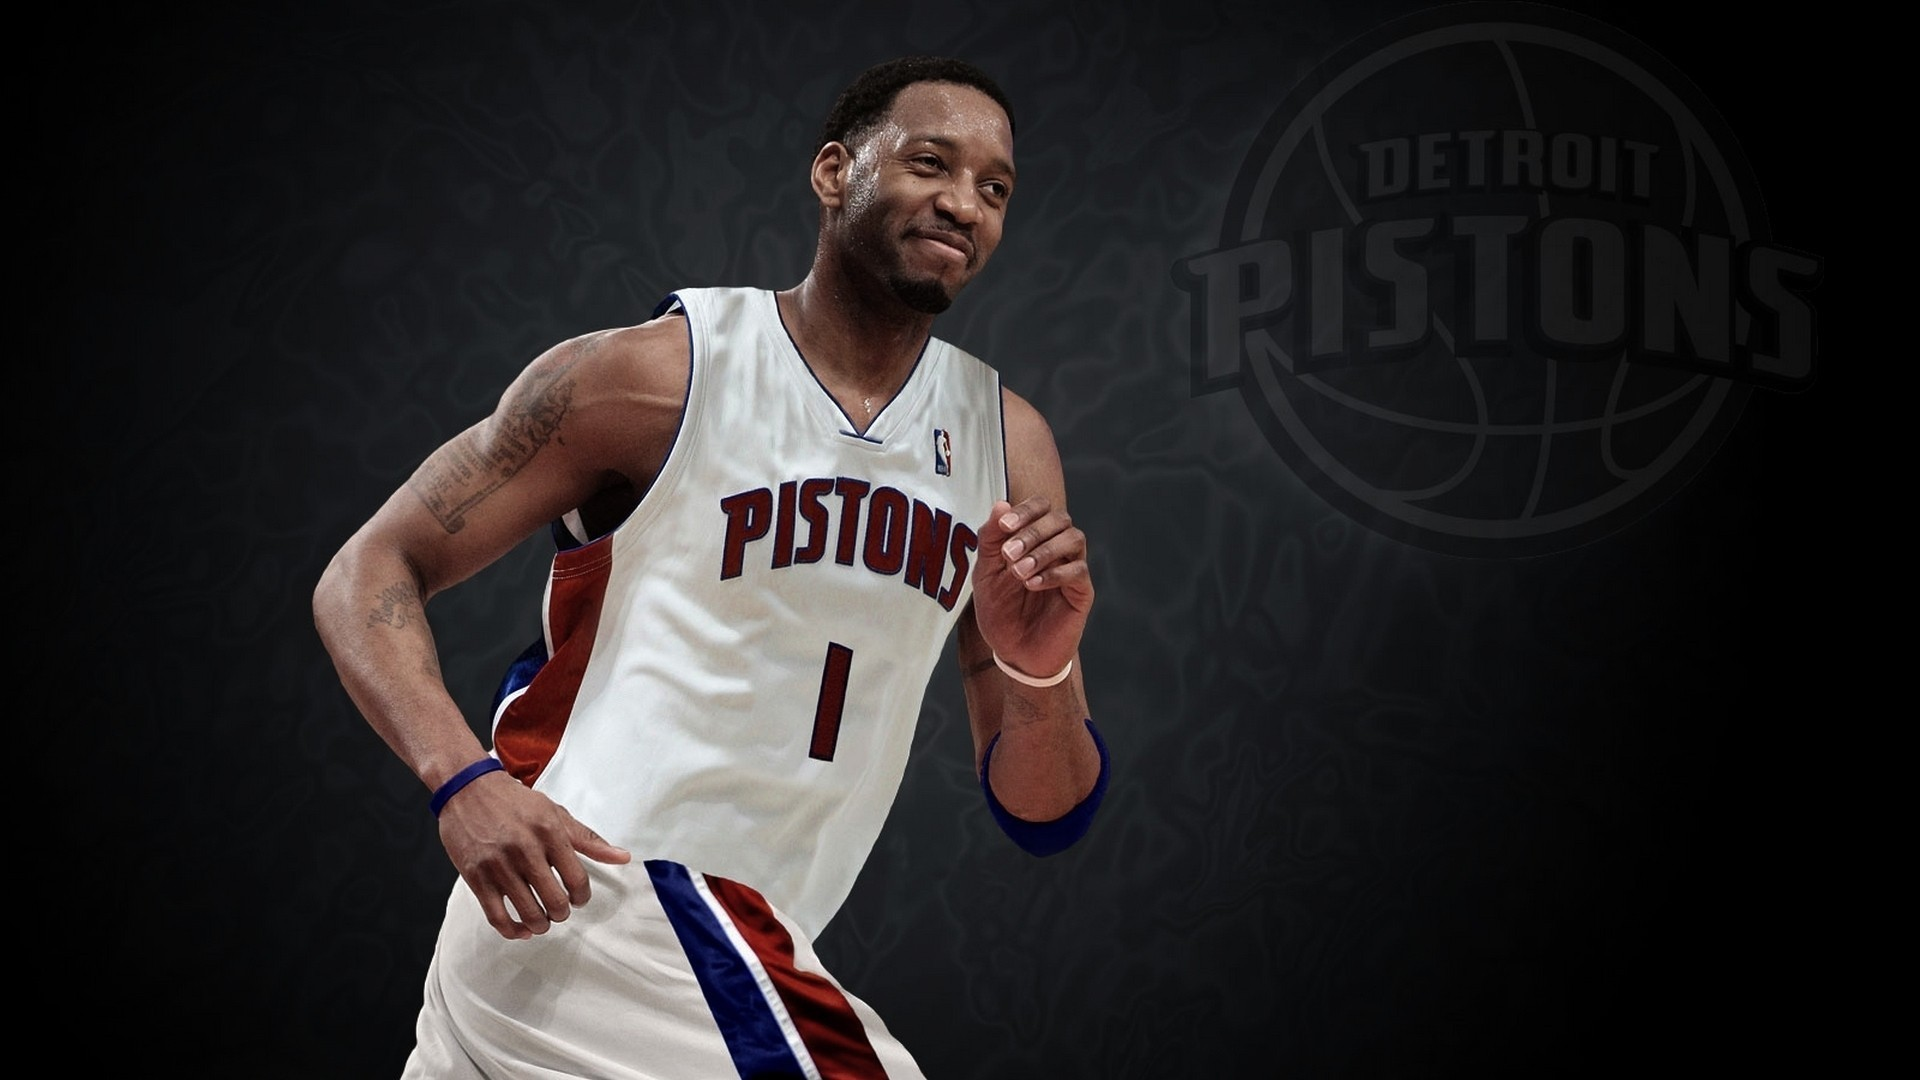 Detroit-pistons-nba-tracy-mcgrady-basketball-player-1920x1080-nba-tracy-basketball-player-via-wallpaper-wpc9204241